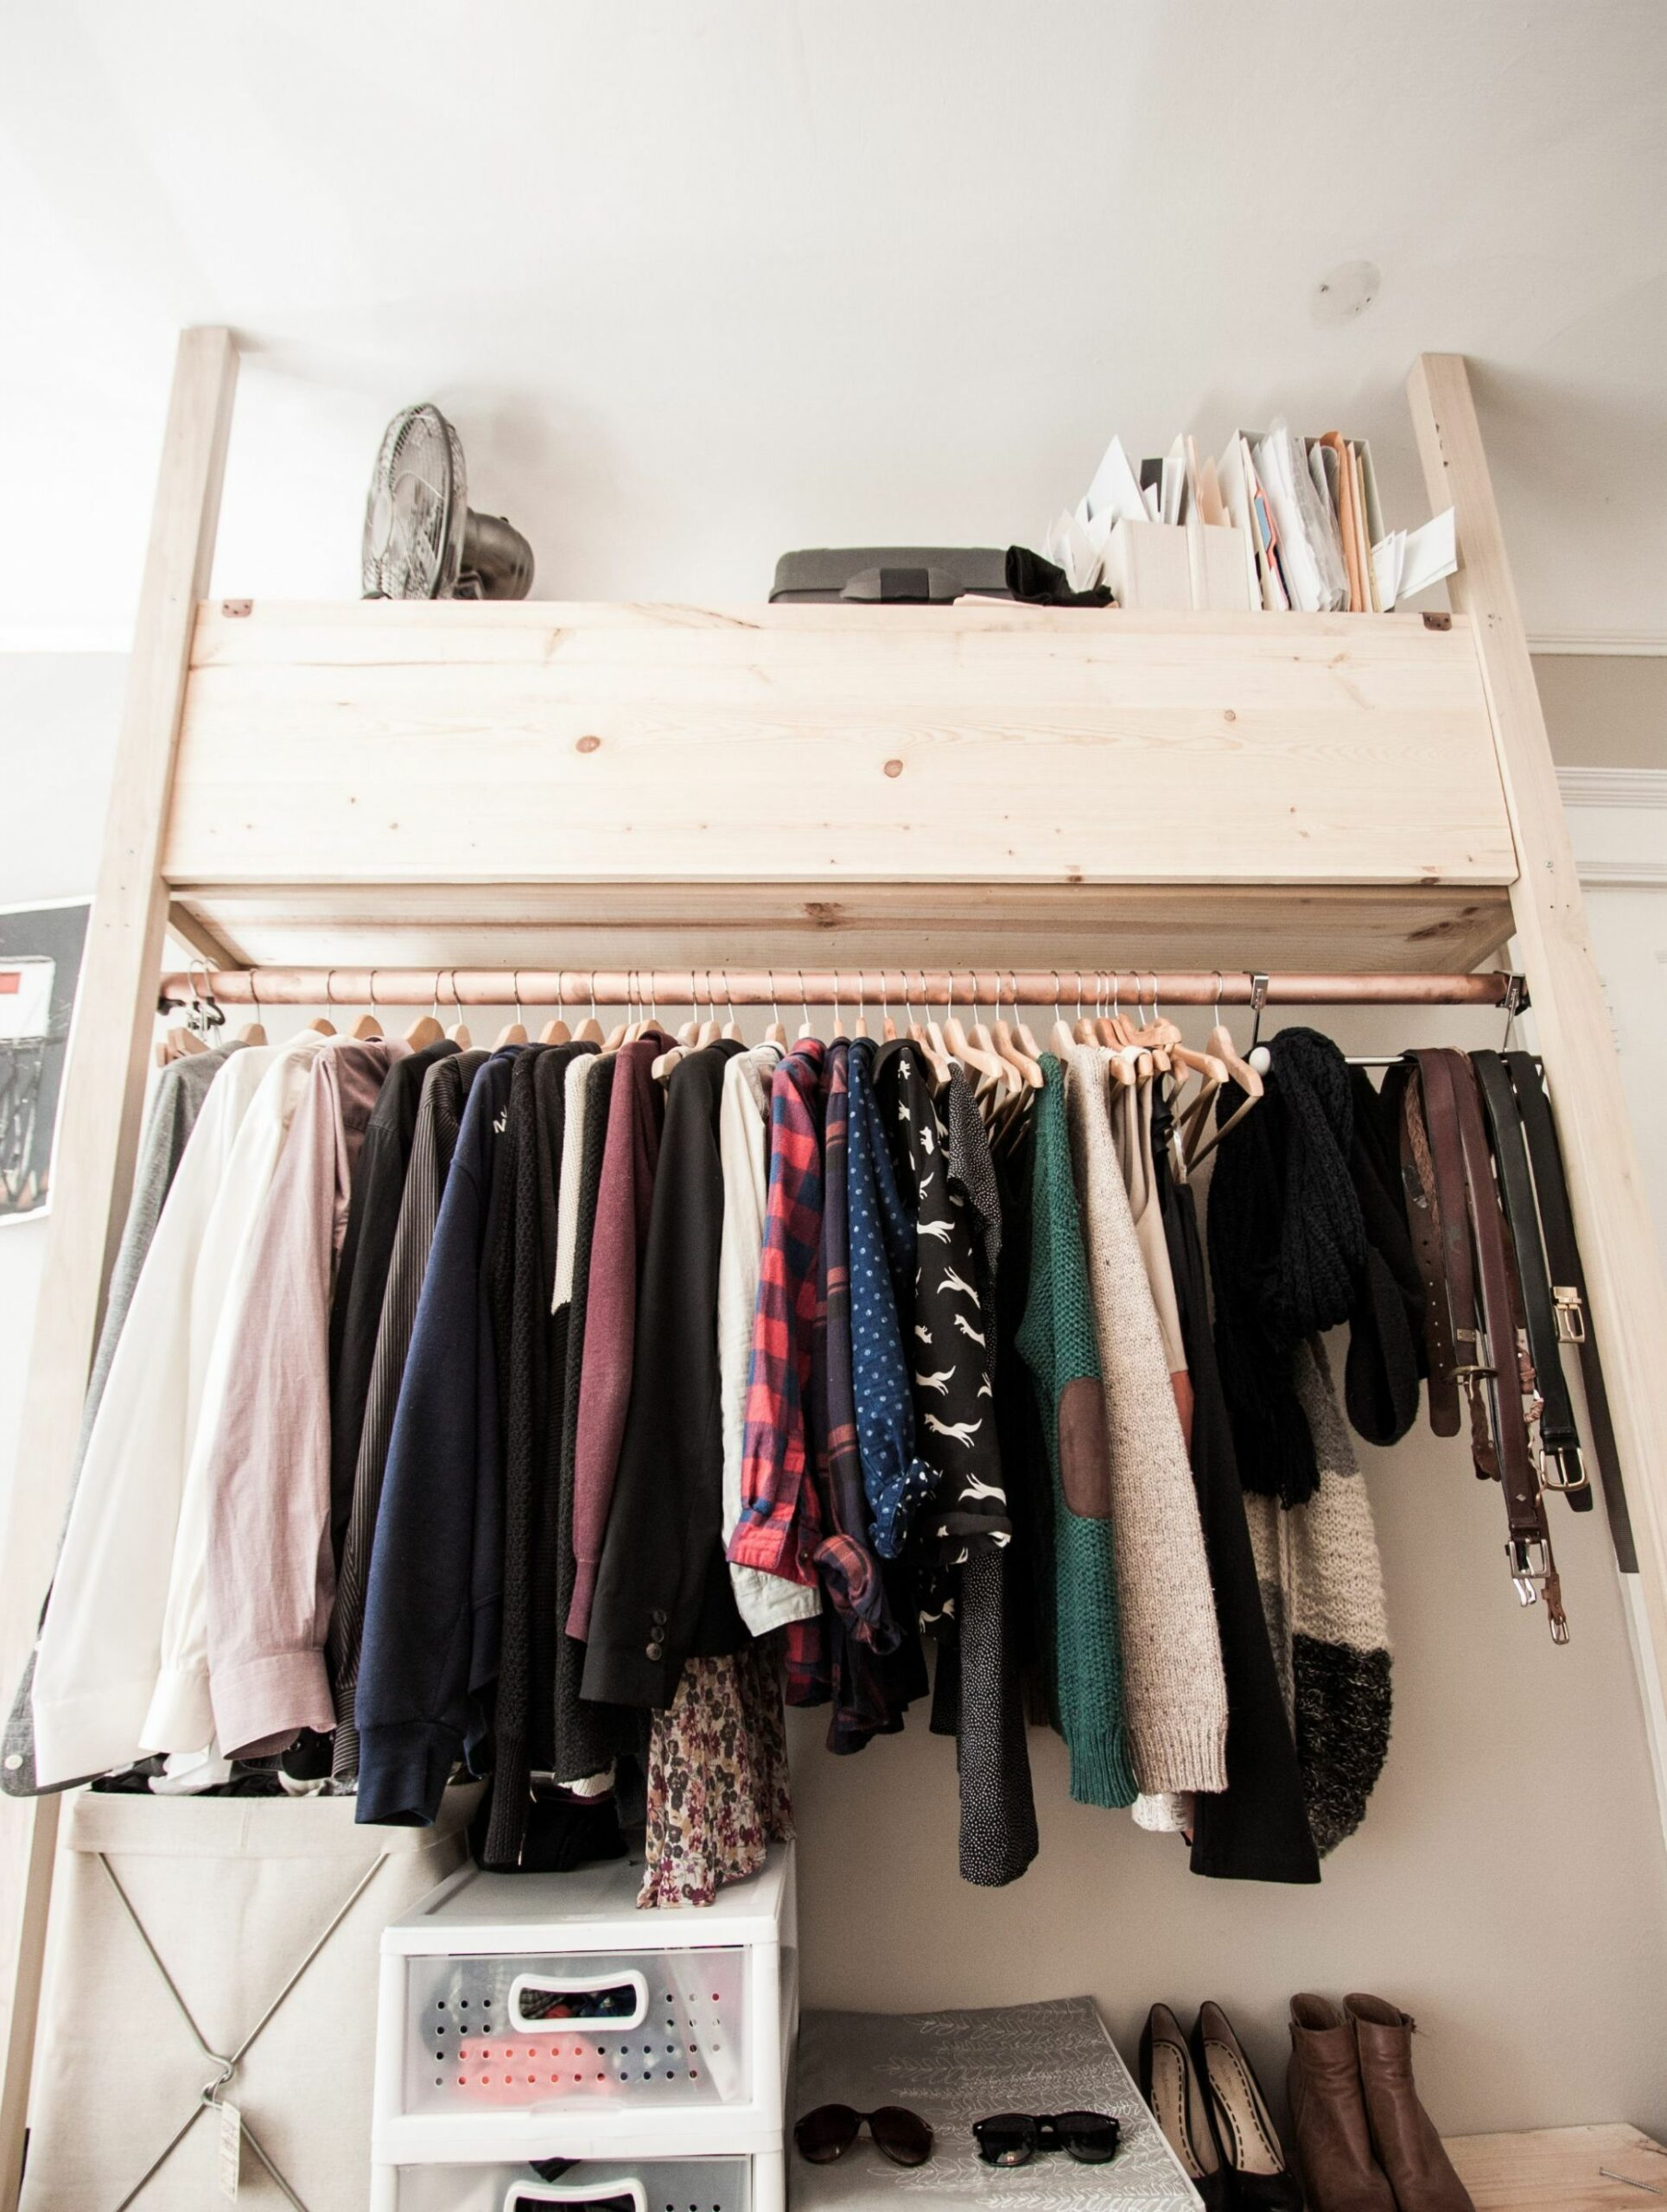 Can we talk about closets and storage? : femalefashionadvice